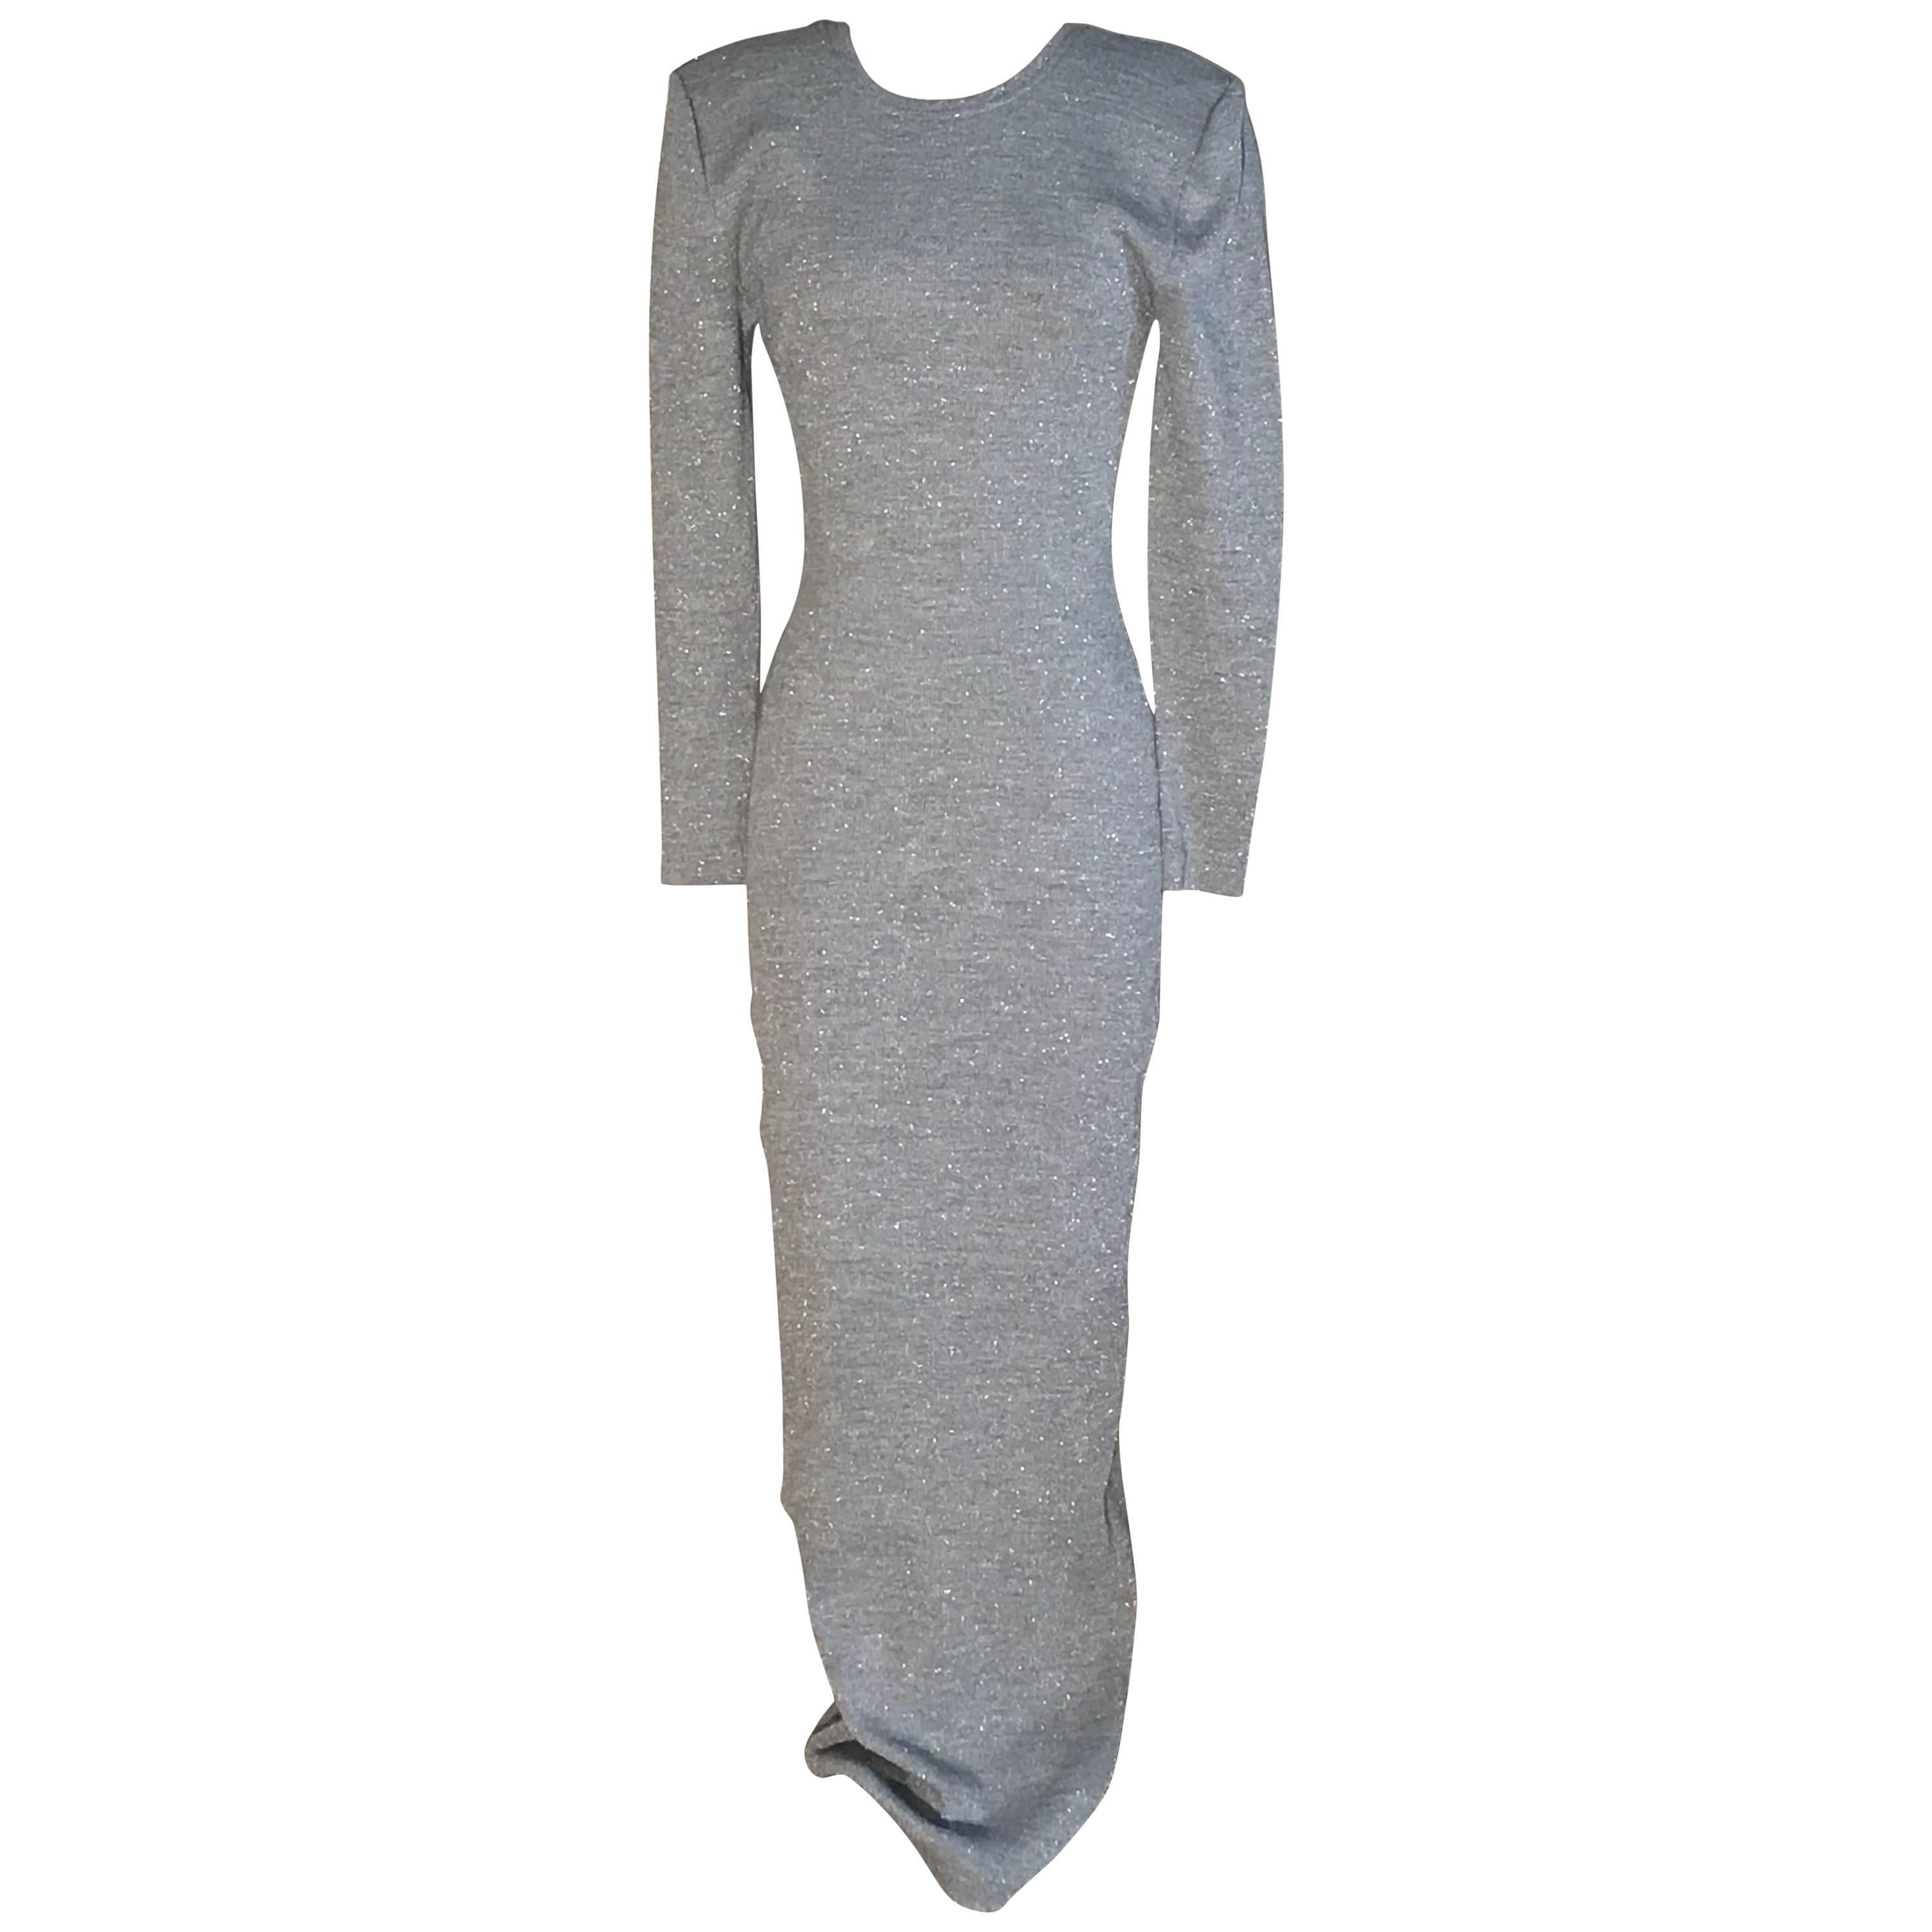 58a5826a9f Patrick Kelly Silver Grey Metallic Bodycon Knit Maxi Dress with Scoop Back,  1980 For Sale at 1stdibs